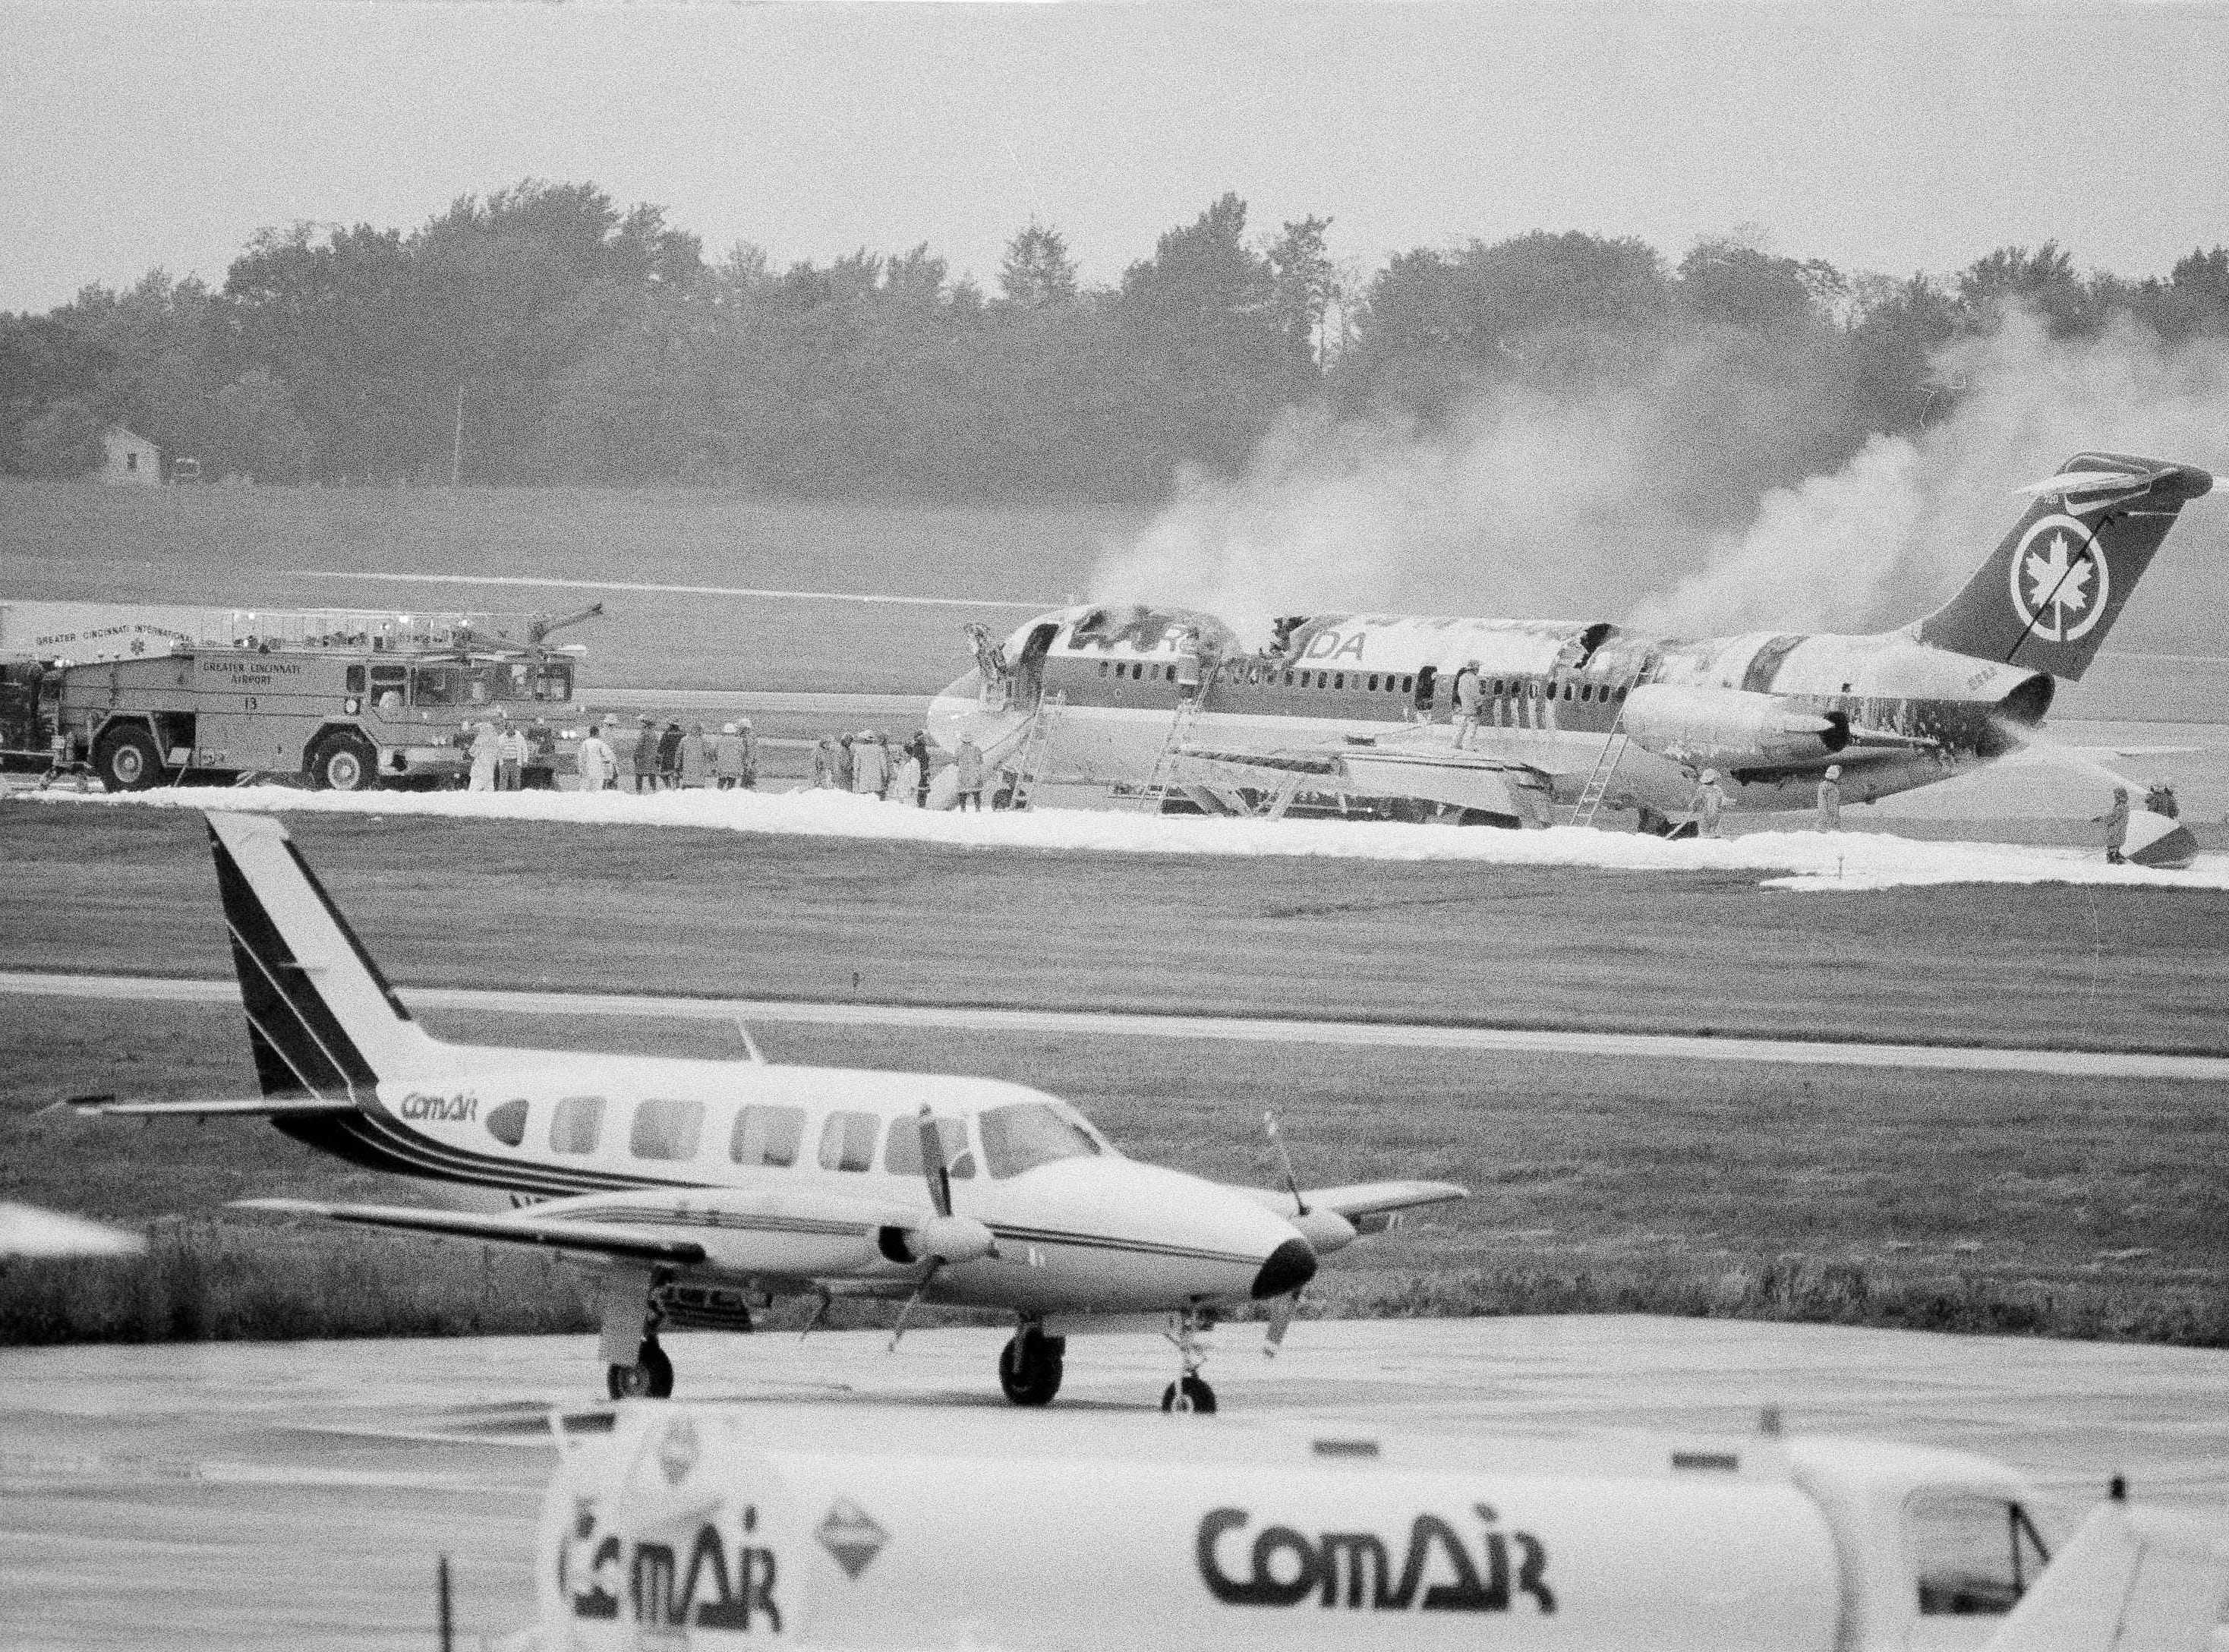 An Air Canada DC9 smolders at the end of a runway at Greater Cincinnati Airport, June 2, 1983. The plane caught fire and made an emergency landing in the middle of its scheduled flight from Dallas-Fort Worth to Toronto. There were two injuries reported, but no deaths. (AP Photo/Al Behrman)